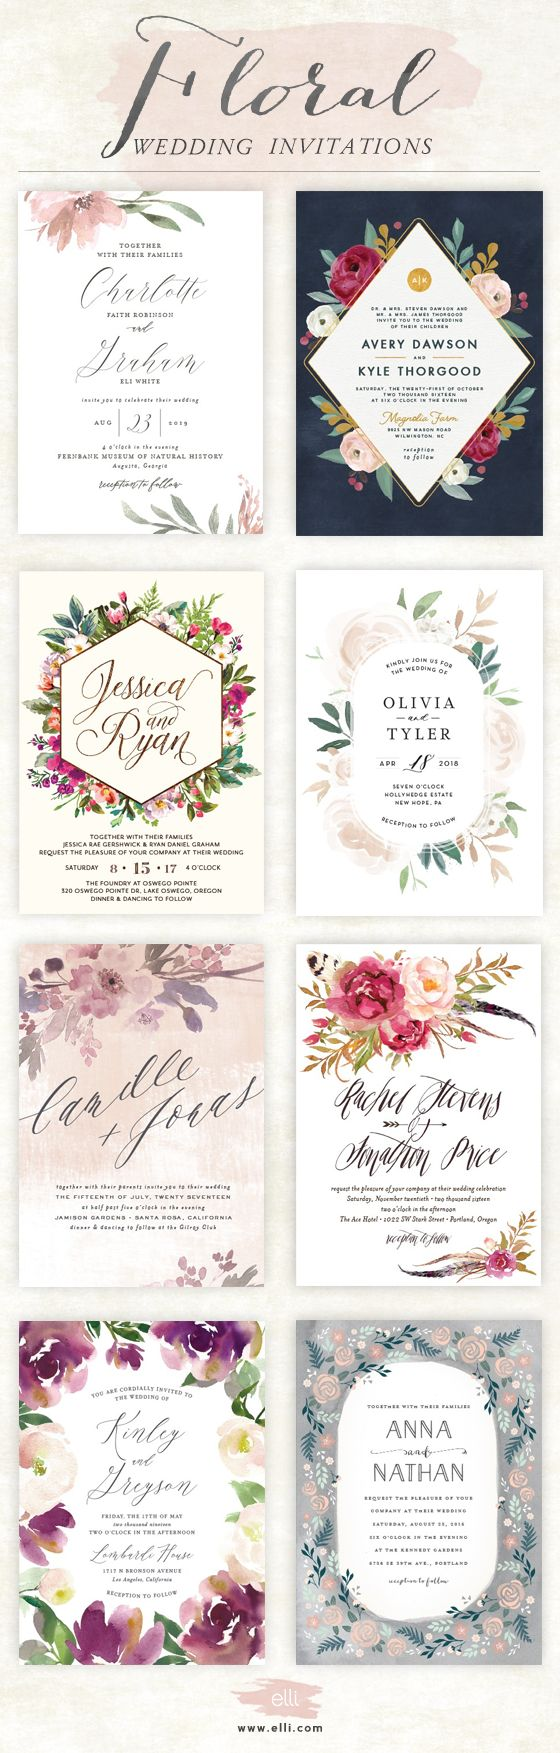 avery address labels wedding invitations%0A Stunning selection of floral wedding invitations available at elli com